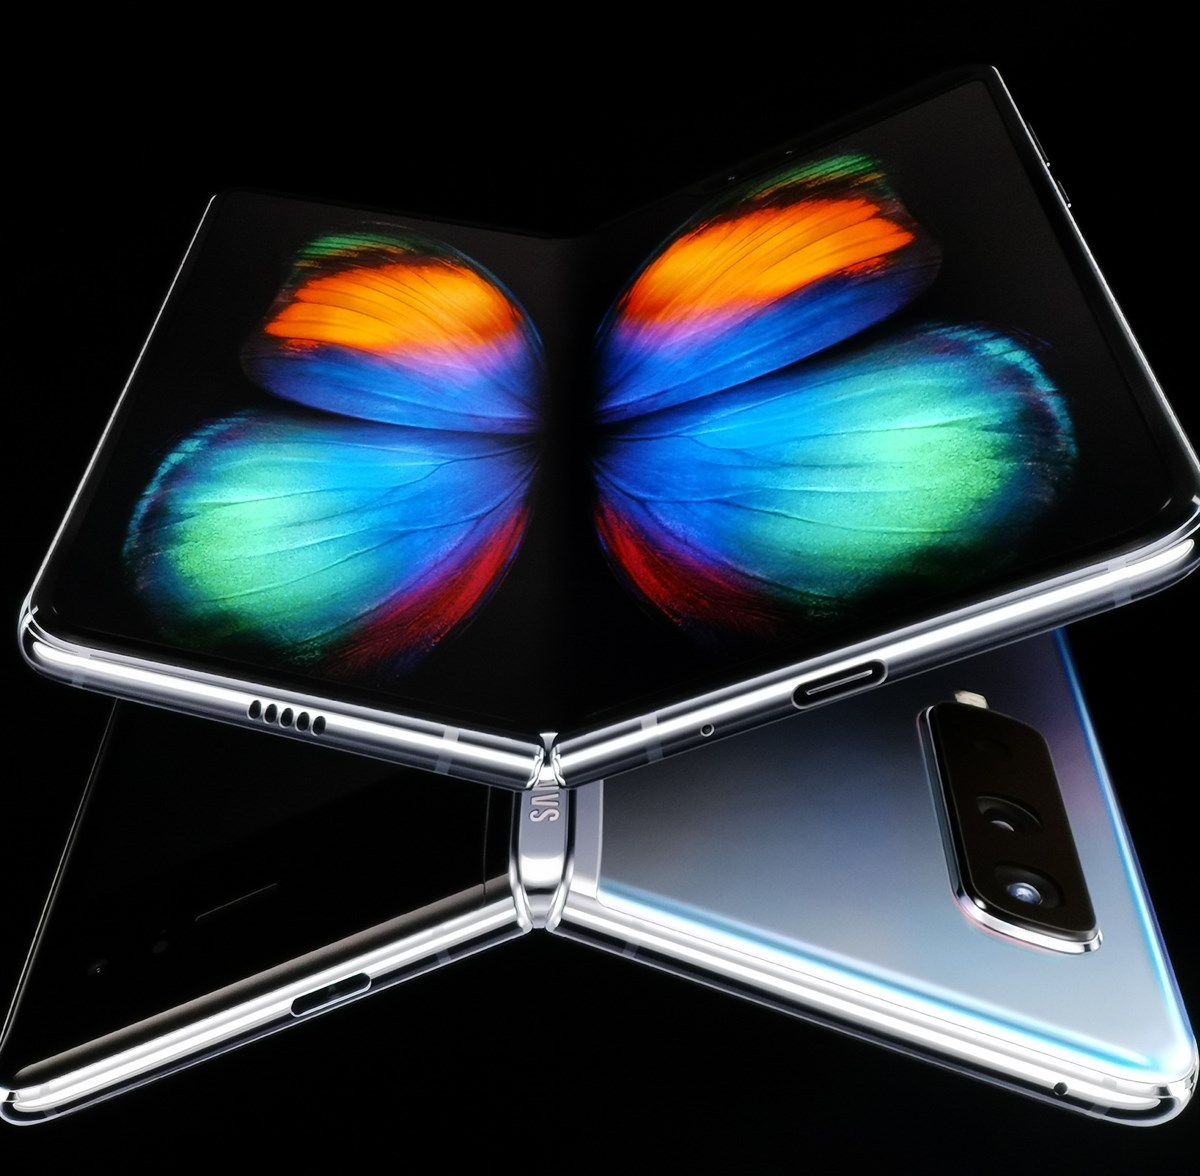 Samsung Galaxy Fold is the first foldable smartphone and it